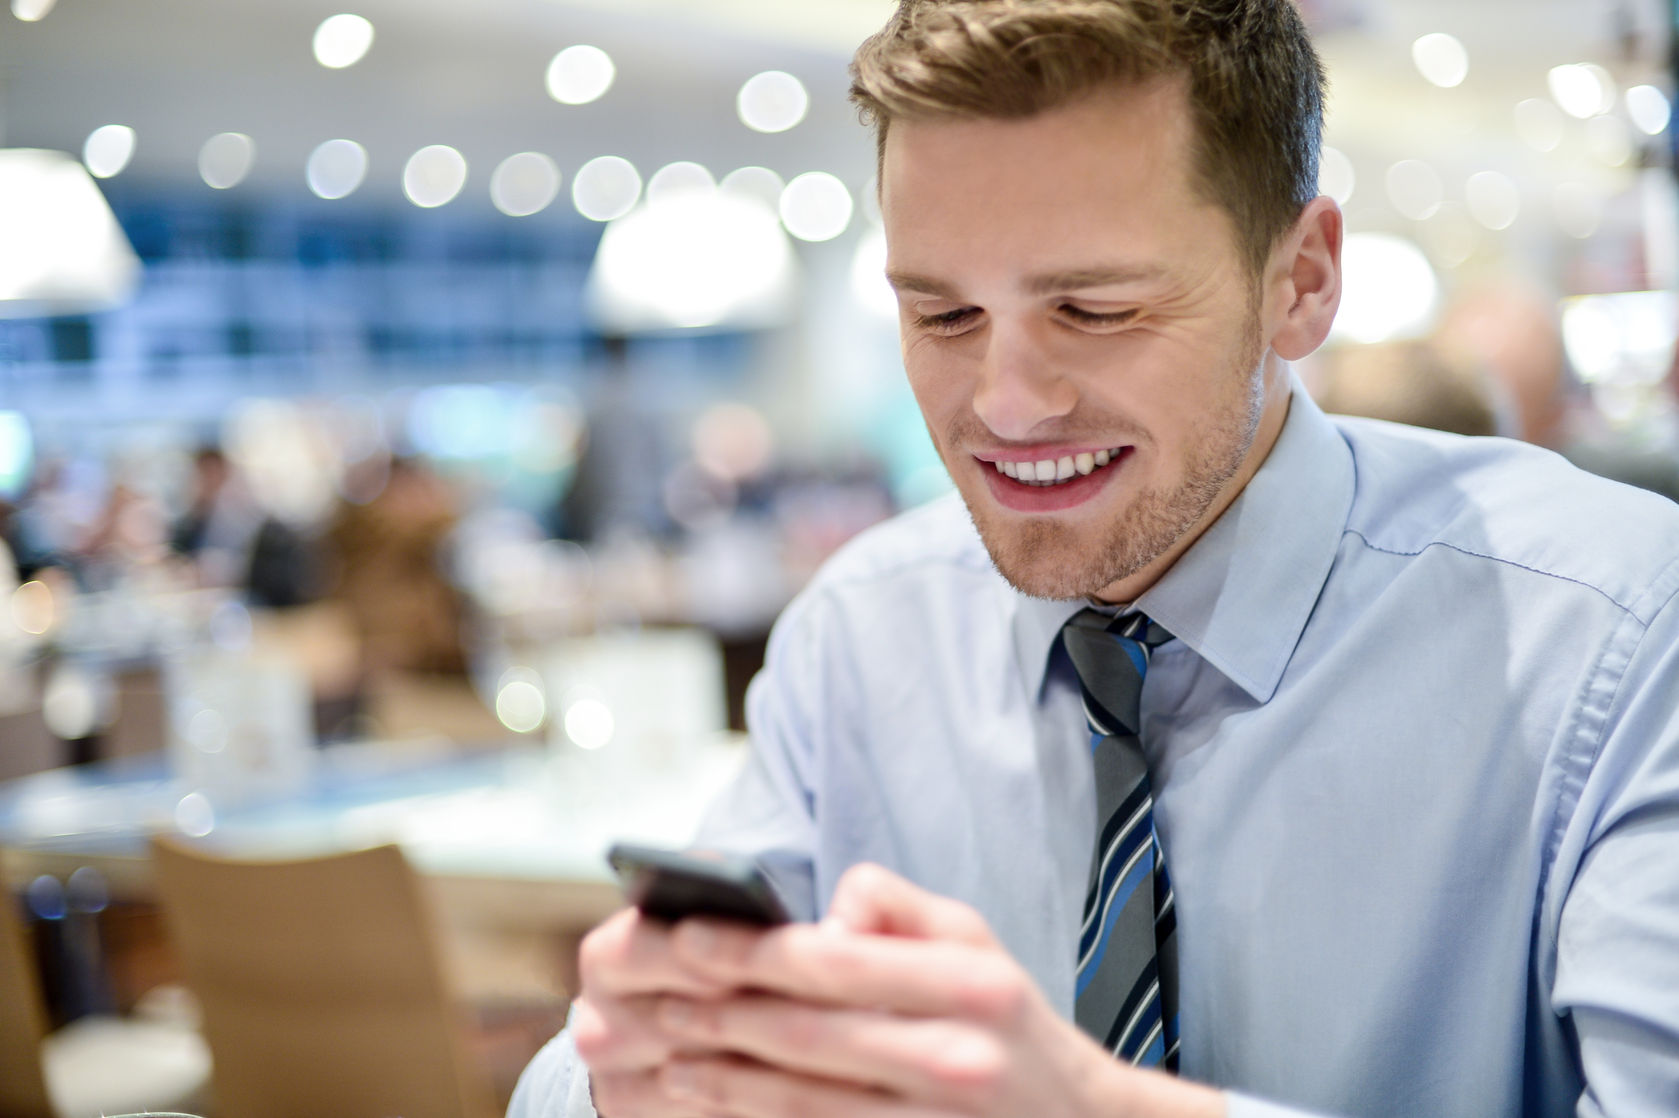 Sales Prospects Convert More With Business Texting